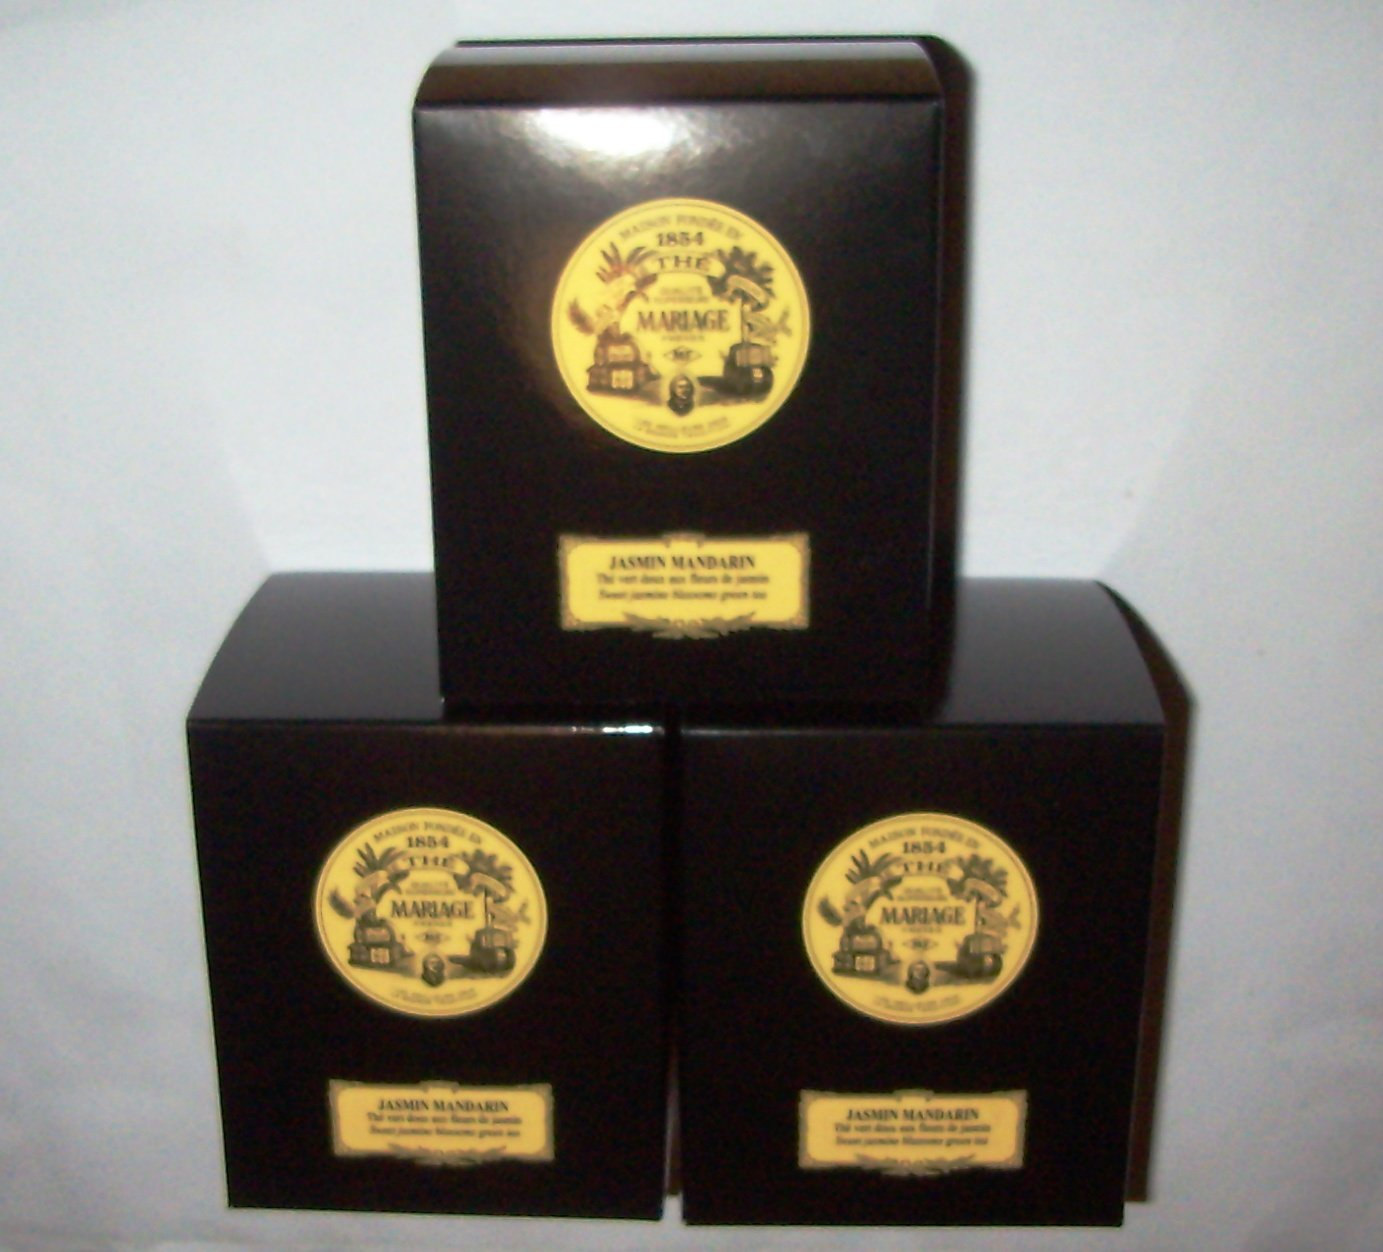 Mariage Frères - JASMIN MANDARIN - 3 x TIN'S of Black classical sealed 3.52oz / 100gr canister / tin